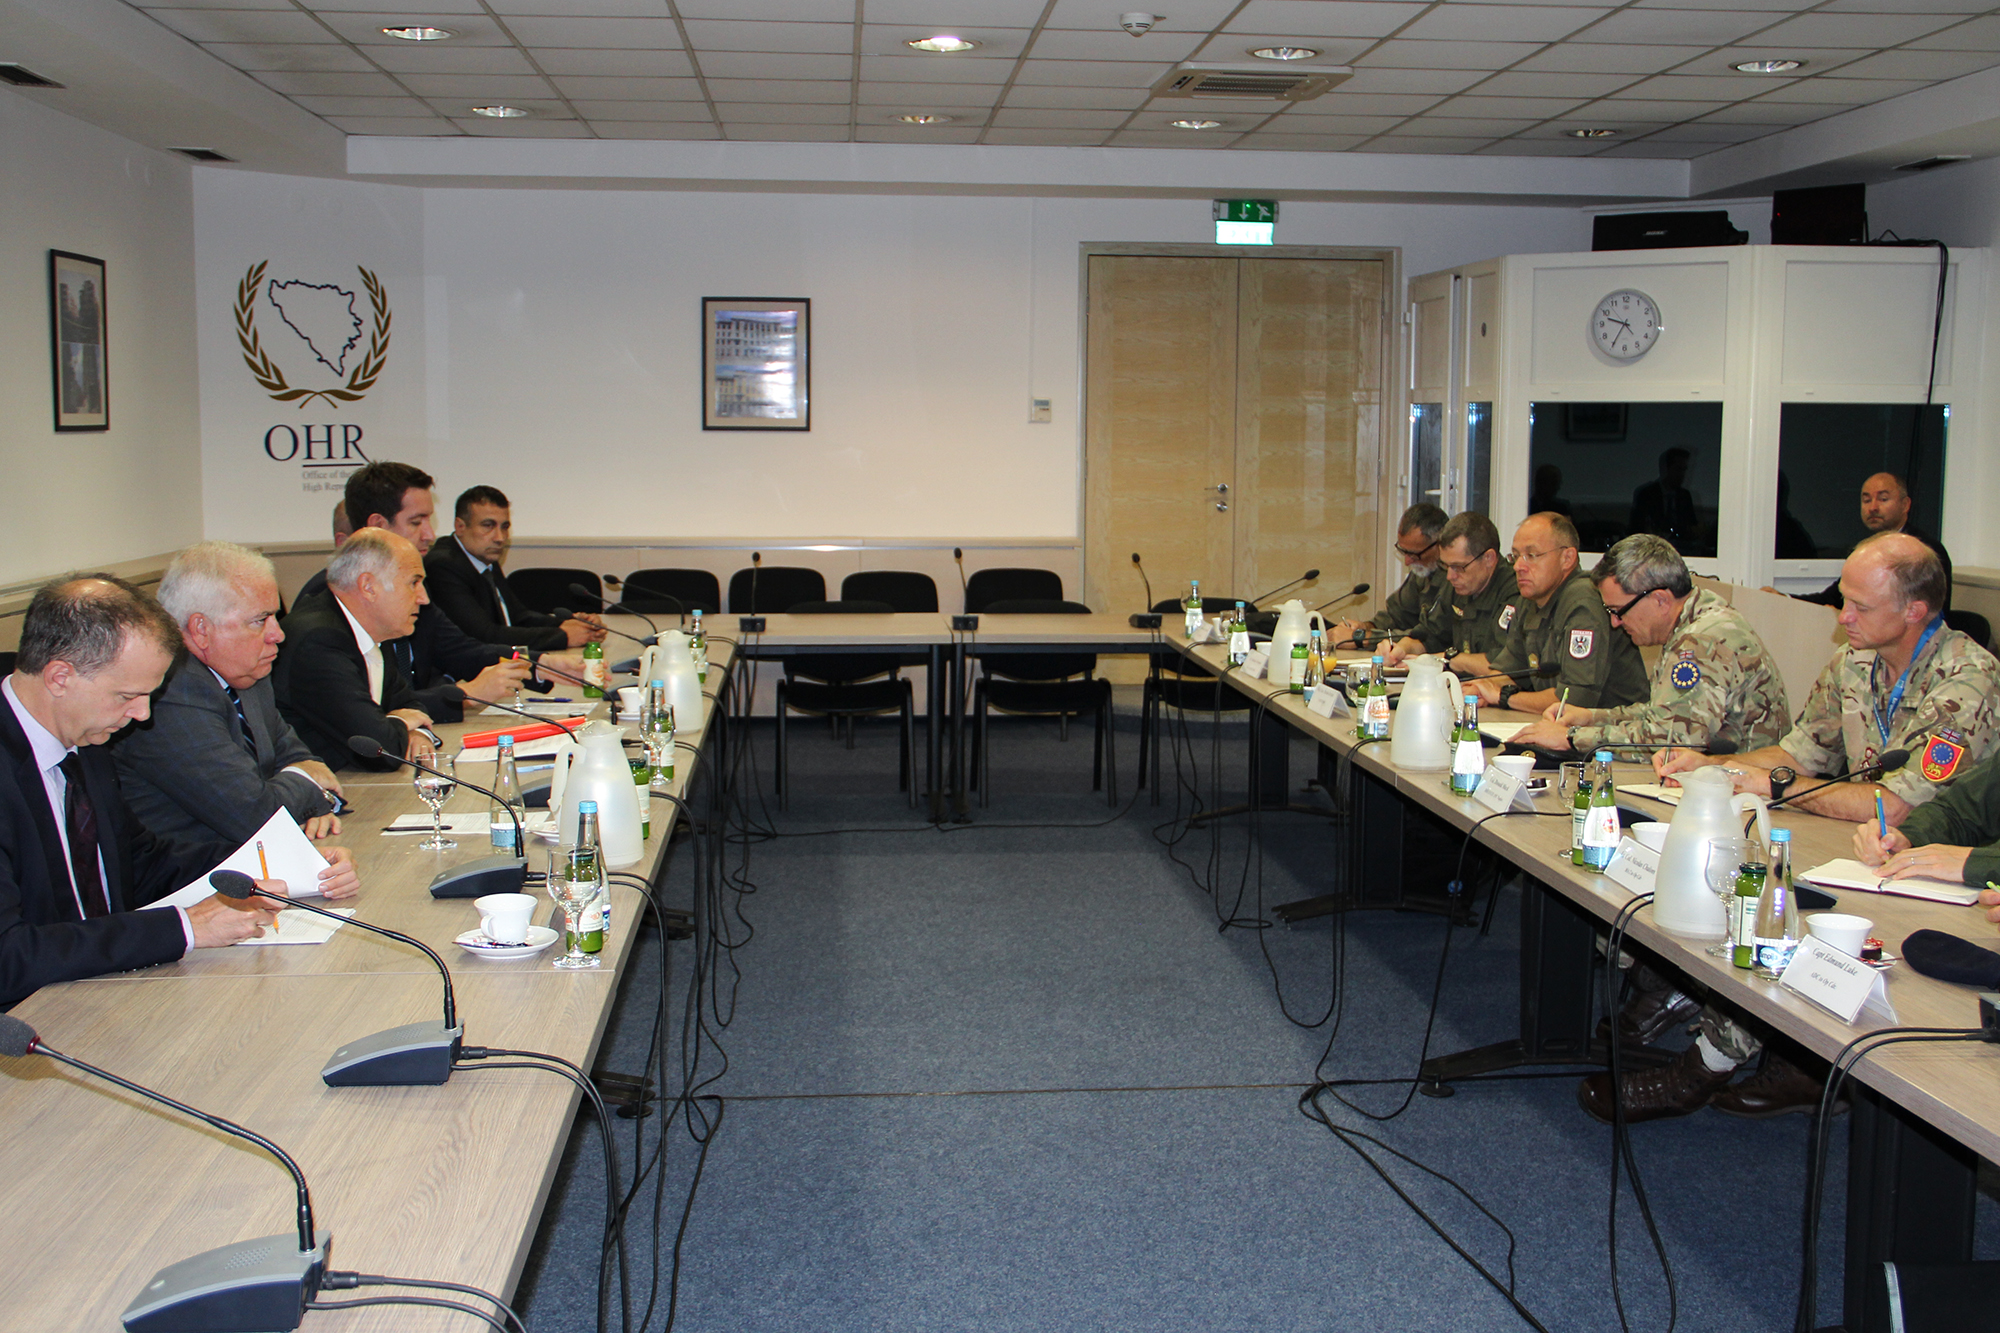 HR Inzko meets EUFOR delegation | Office of the High Representative